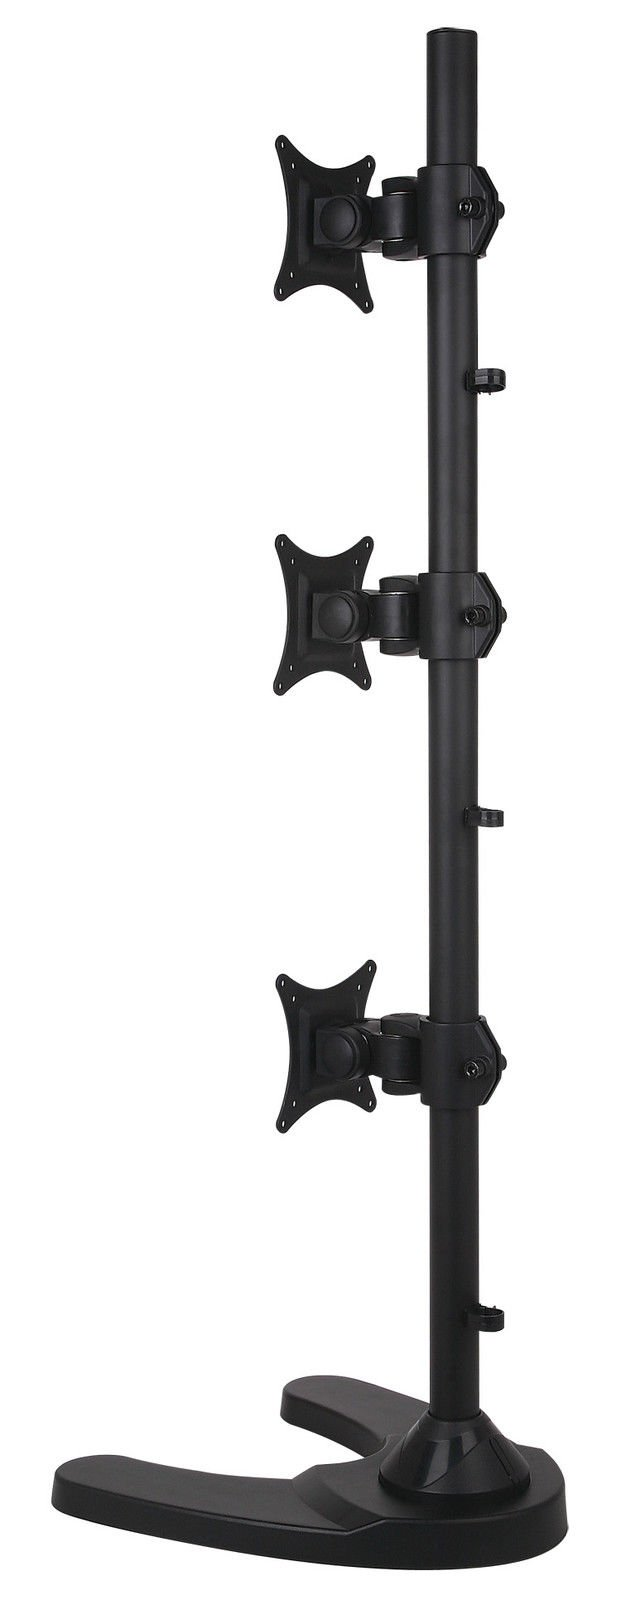 USED Triple Monitor Desk Stand/Mount Free Standing Vertical 3 Screens upto 27'' by SANOXY (Image #6)